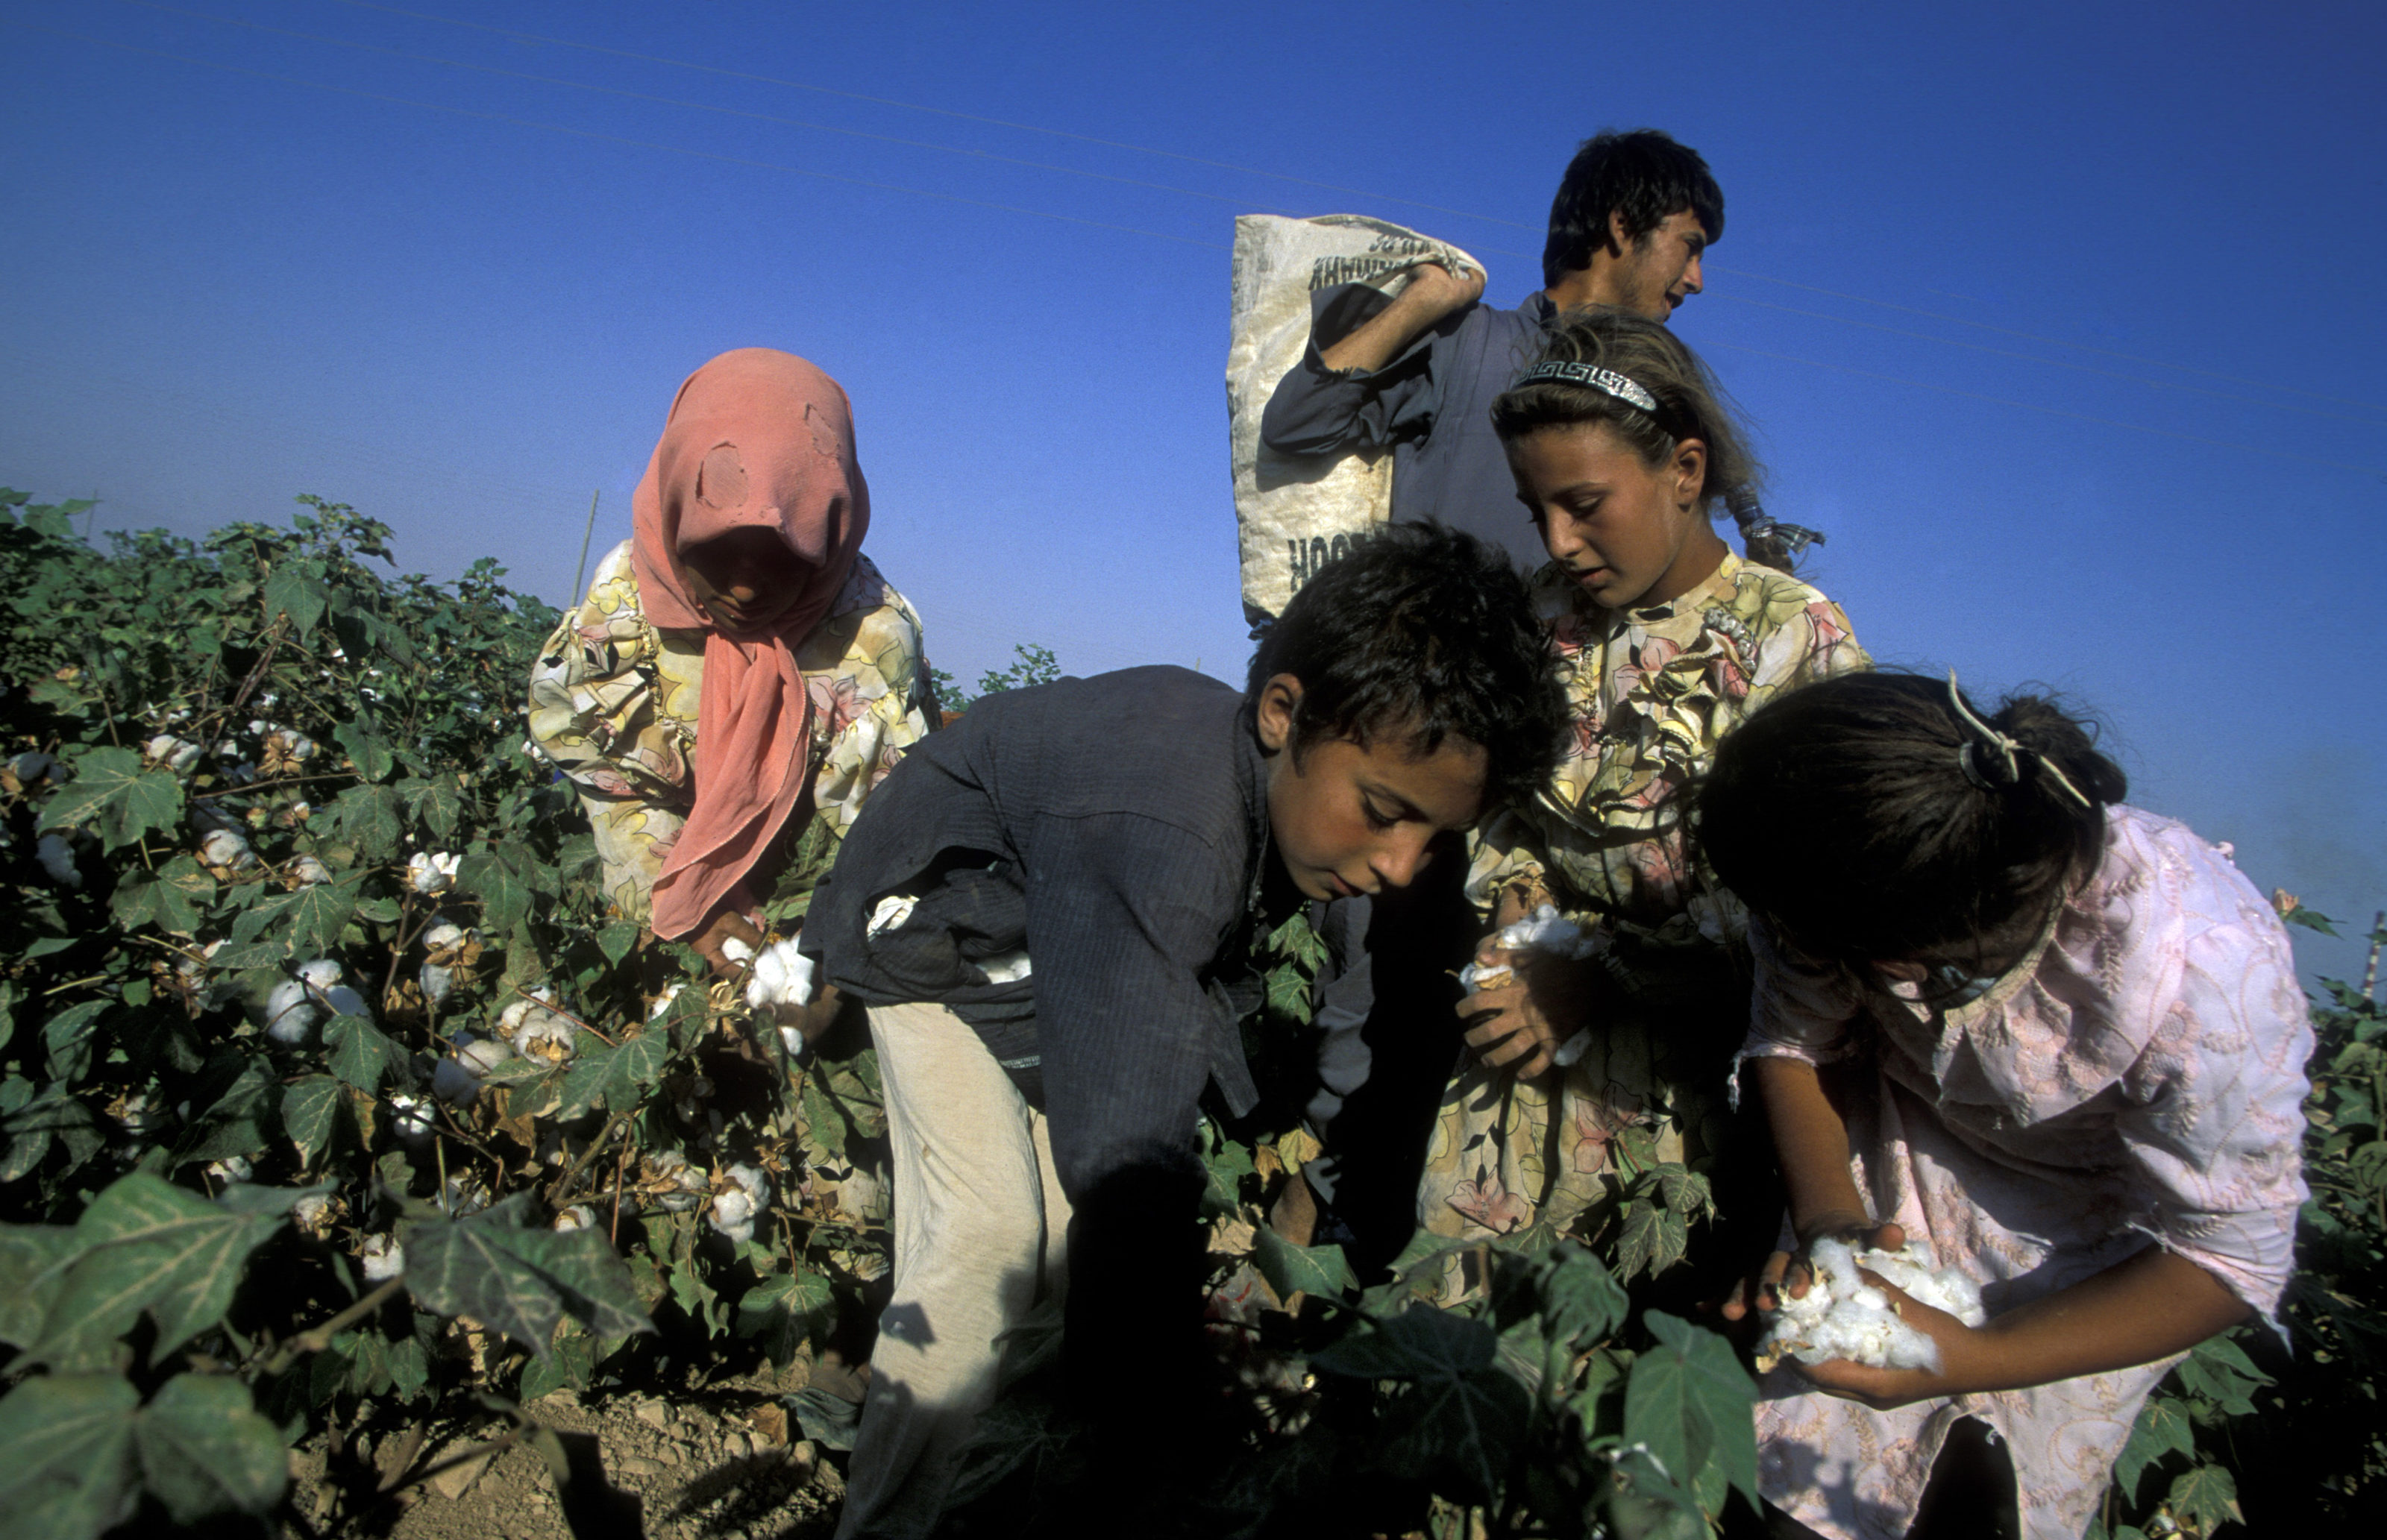 childern earning cotton on a Cotton Plantation near the city of Aleppo in Syria in the middle east